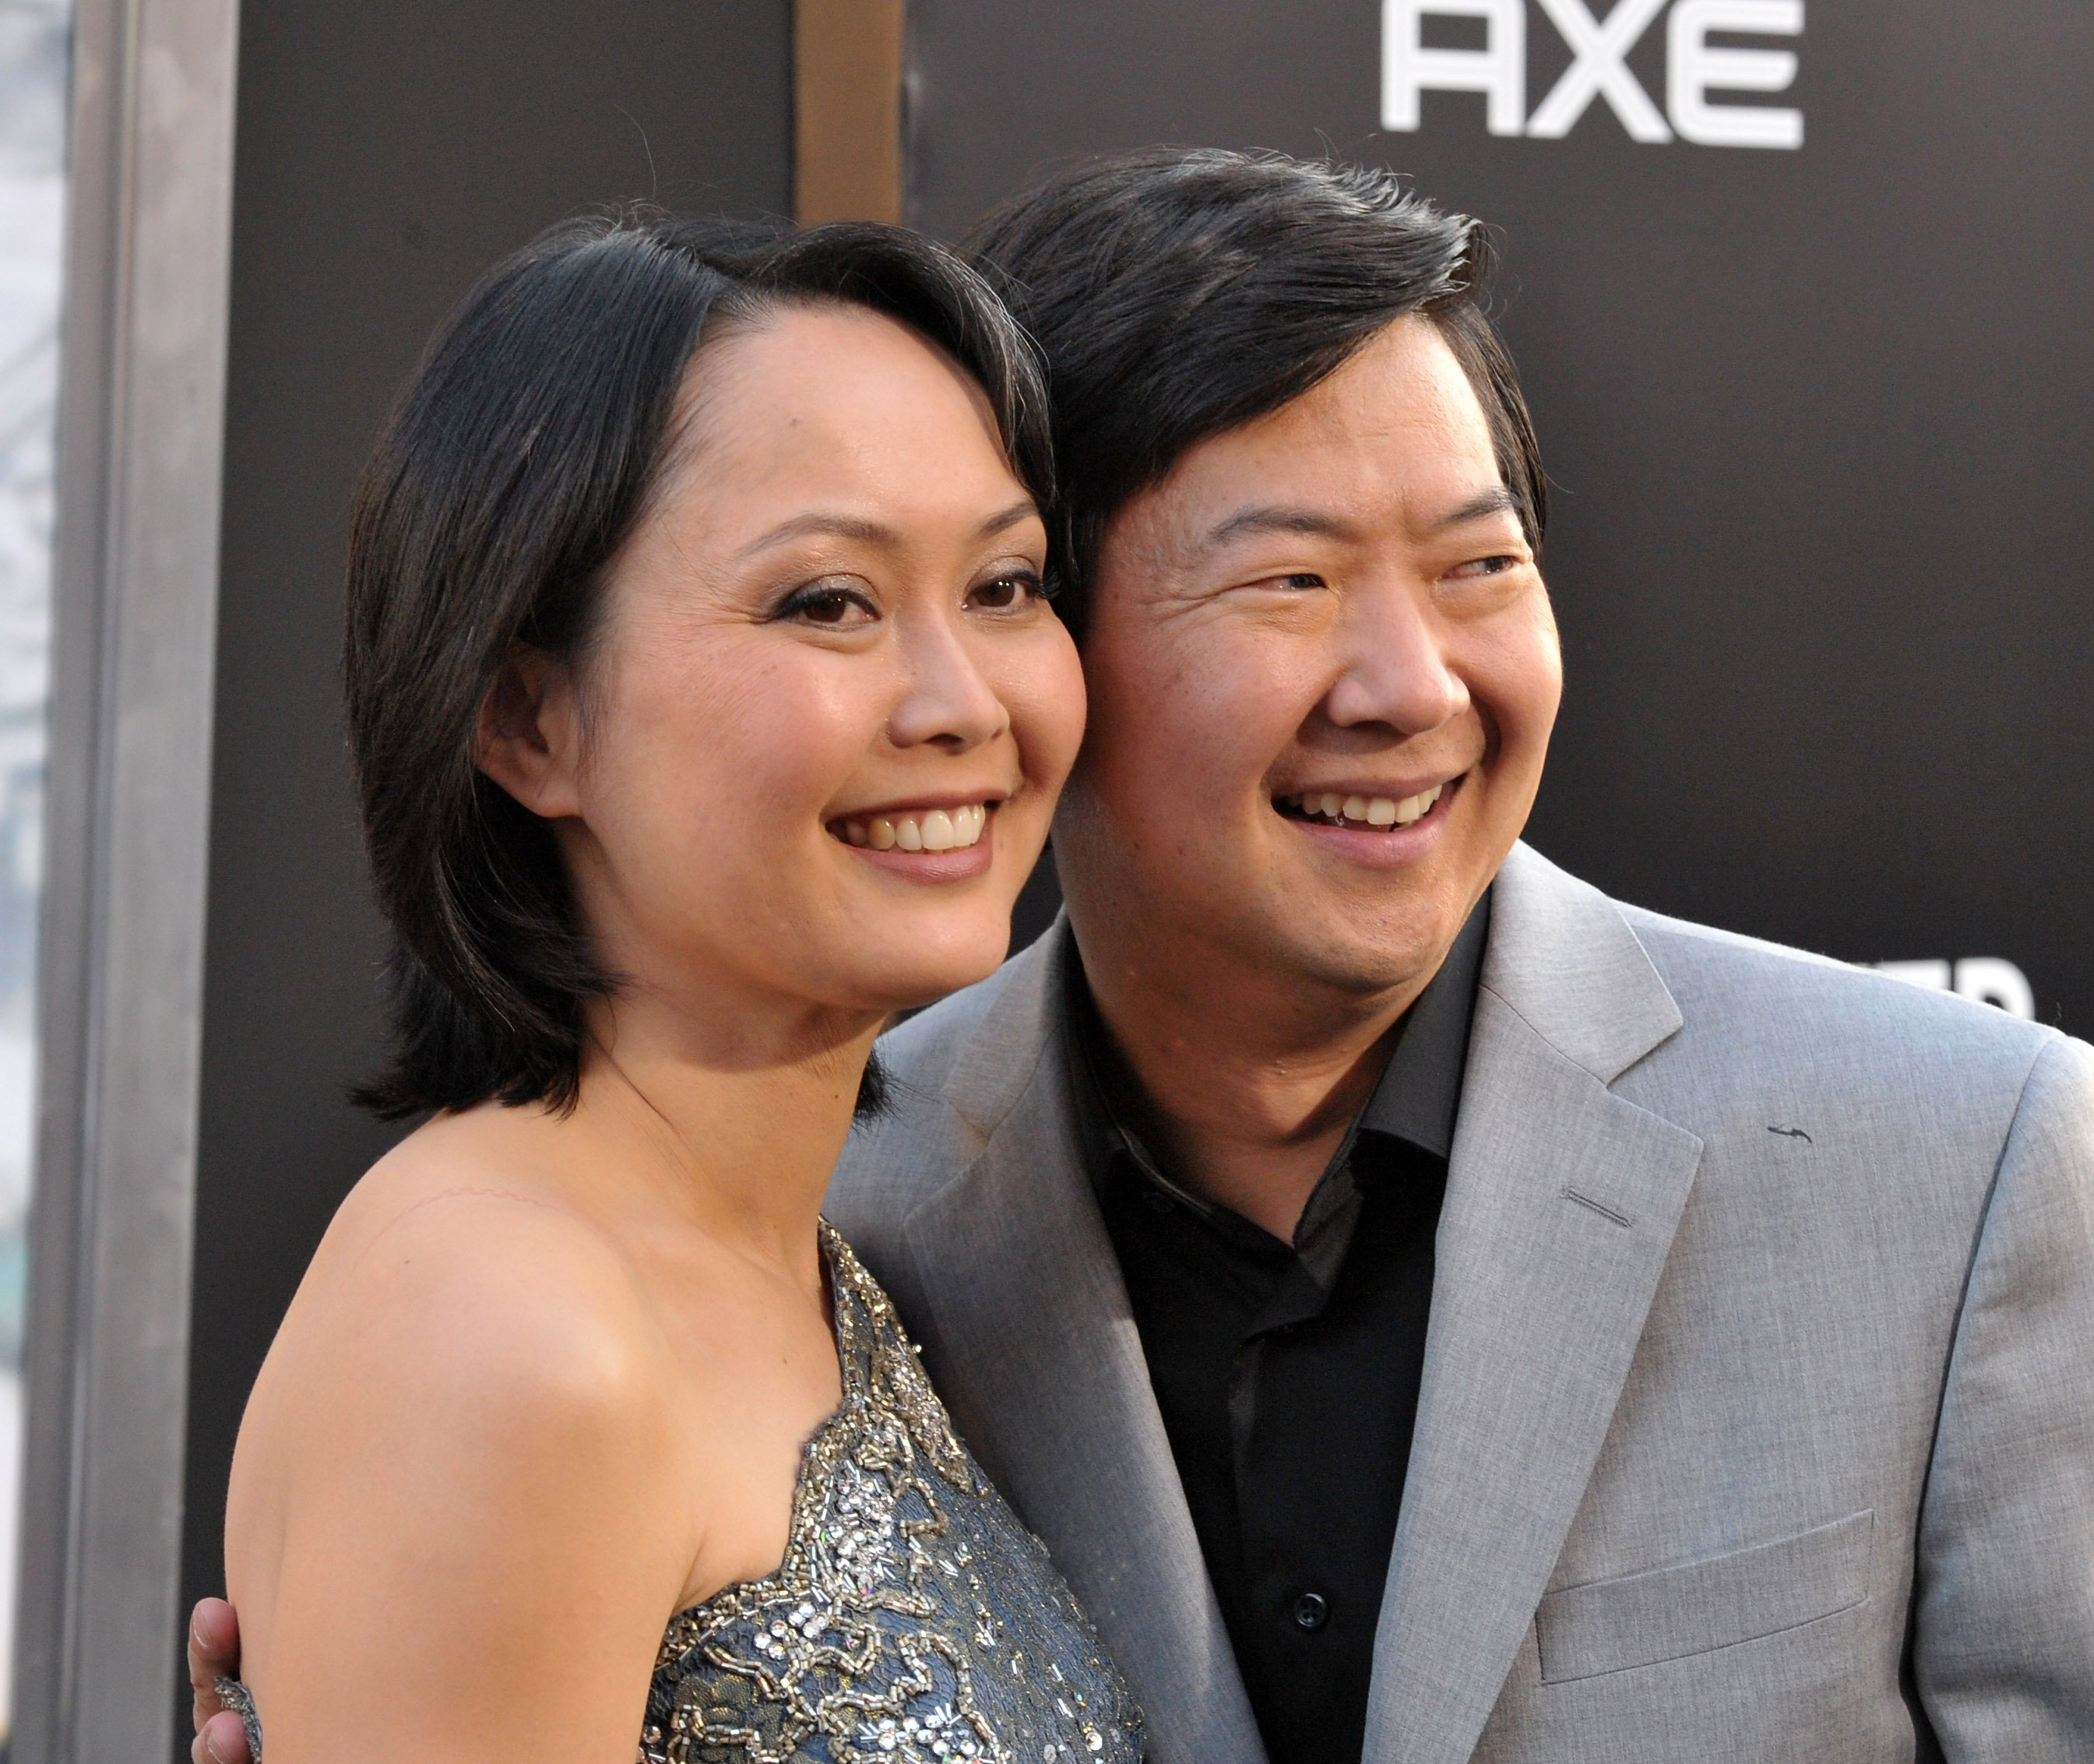 """Tran and Ken Jeong at """"The Hangover Part II"""" Los Angeles premiere on May 19, 2011 in Hollywood, California. 